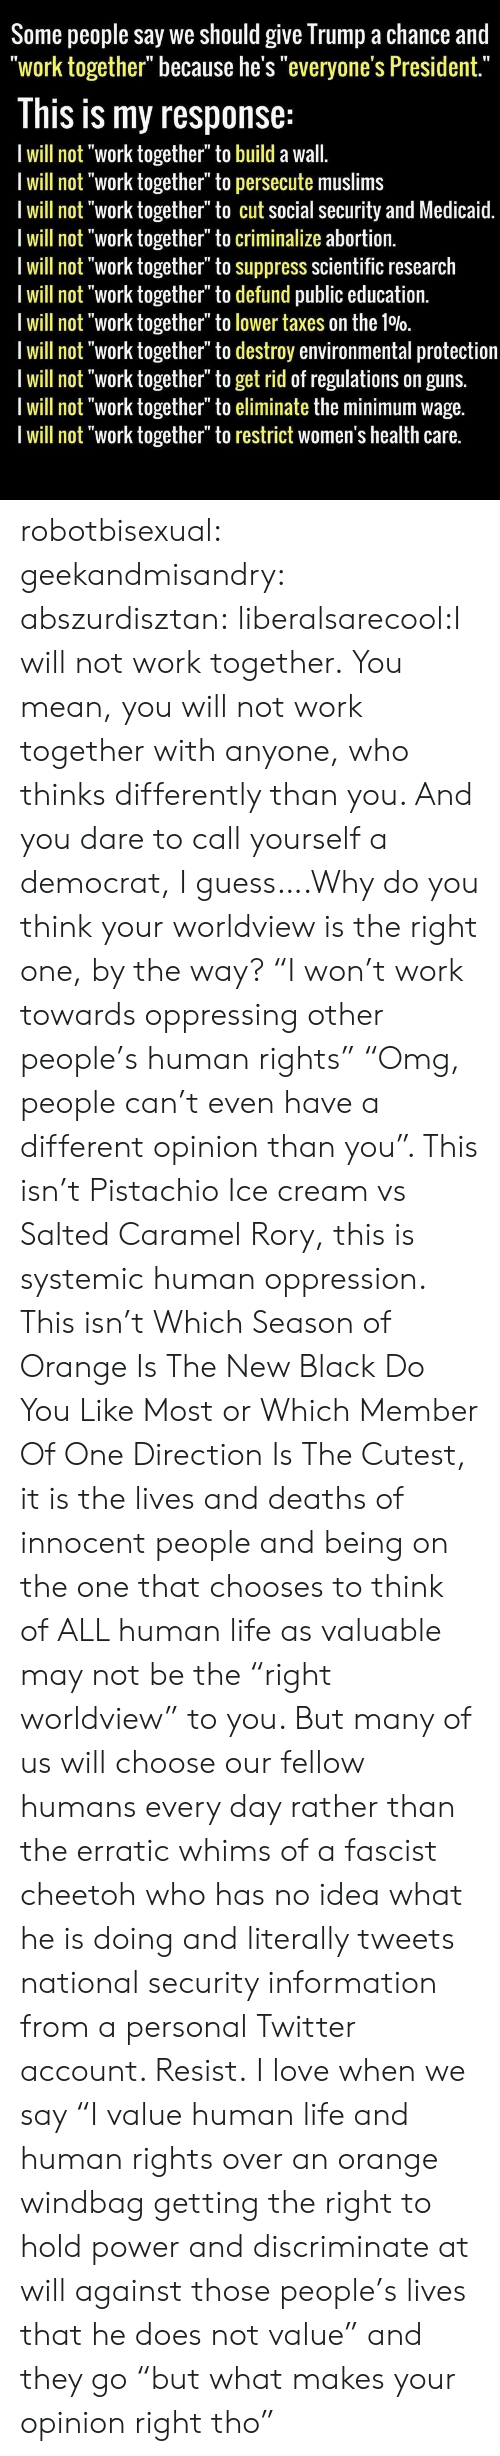 """Orange Is the New Black: Some people say we should give Trump a chance and  """"work together"""" because he's """"everyone's President.""""  This is my response:  I will not """"work together"""" to build a wall.  I will not """"work together"""" to persecute muslims  I will not """"work together"""" to cut social security and Medicaid.  I will not """"work together"""" to criminalize abortion.  I will not """"work together"""" to suppress scientific research  I will not """"work together"""" to defund public education.  I will not """"work together"""" to lower taxes on the 10%0.  Iwill not """"work together"""" to destroy environmental protection  I will not """"work together"""" to get rid of regulations on guns.  I will not """"work together"""" to eliminate the minimum wage.  I will not """"work together"""" to restrict women's health care. robotbisexual:  geekandmisandry:  abszurdisztan:  liberalsarecool:I will not work together. You mean, you will not work together with anyone, who thinks differently than you. And you dare to call yourself a democrat, I guess….Why do you think your worldview is the right one, by the way?  """"I won't work towards oppressing other people's human rights"""" """"Omg, people can't even have a different opinion than you"""". This isn't Pistachio Ice cream vs Salted Caramel Rory, this is systemic human oppression. This isn't Which Season of Orange Is The New Black Do You Like Most or Which Member Of One Direction Is The Cutest, it is the lives and deaths of innocent people and being on the one that chooses to think of ALL human life as valuable may not be the """"right worldview"""" to you. But many of us will choose our fellow humans every day rather than the erratic whims of a fascist cheetoh who has no idea what he is doing and literally tweets national security information from a personal Twitter account. Resist.  I love when we say """"I value human life and human rights over an orange windbag getting the right to hold power and discriminate at will against those people's lives that he does not value"""" and they go """"but what"""